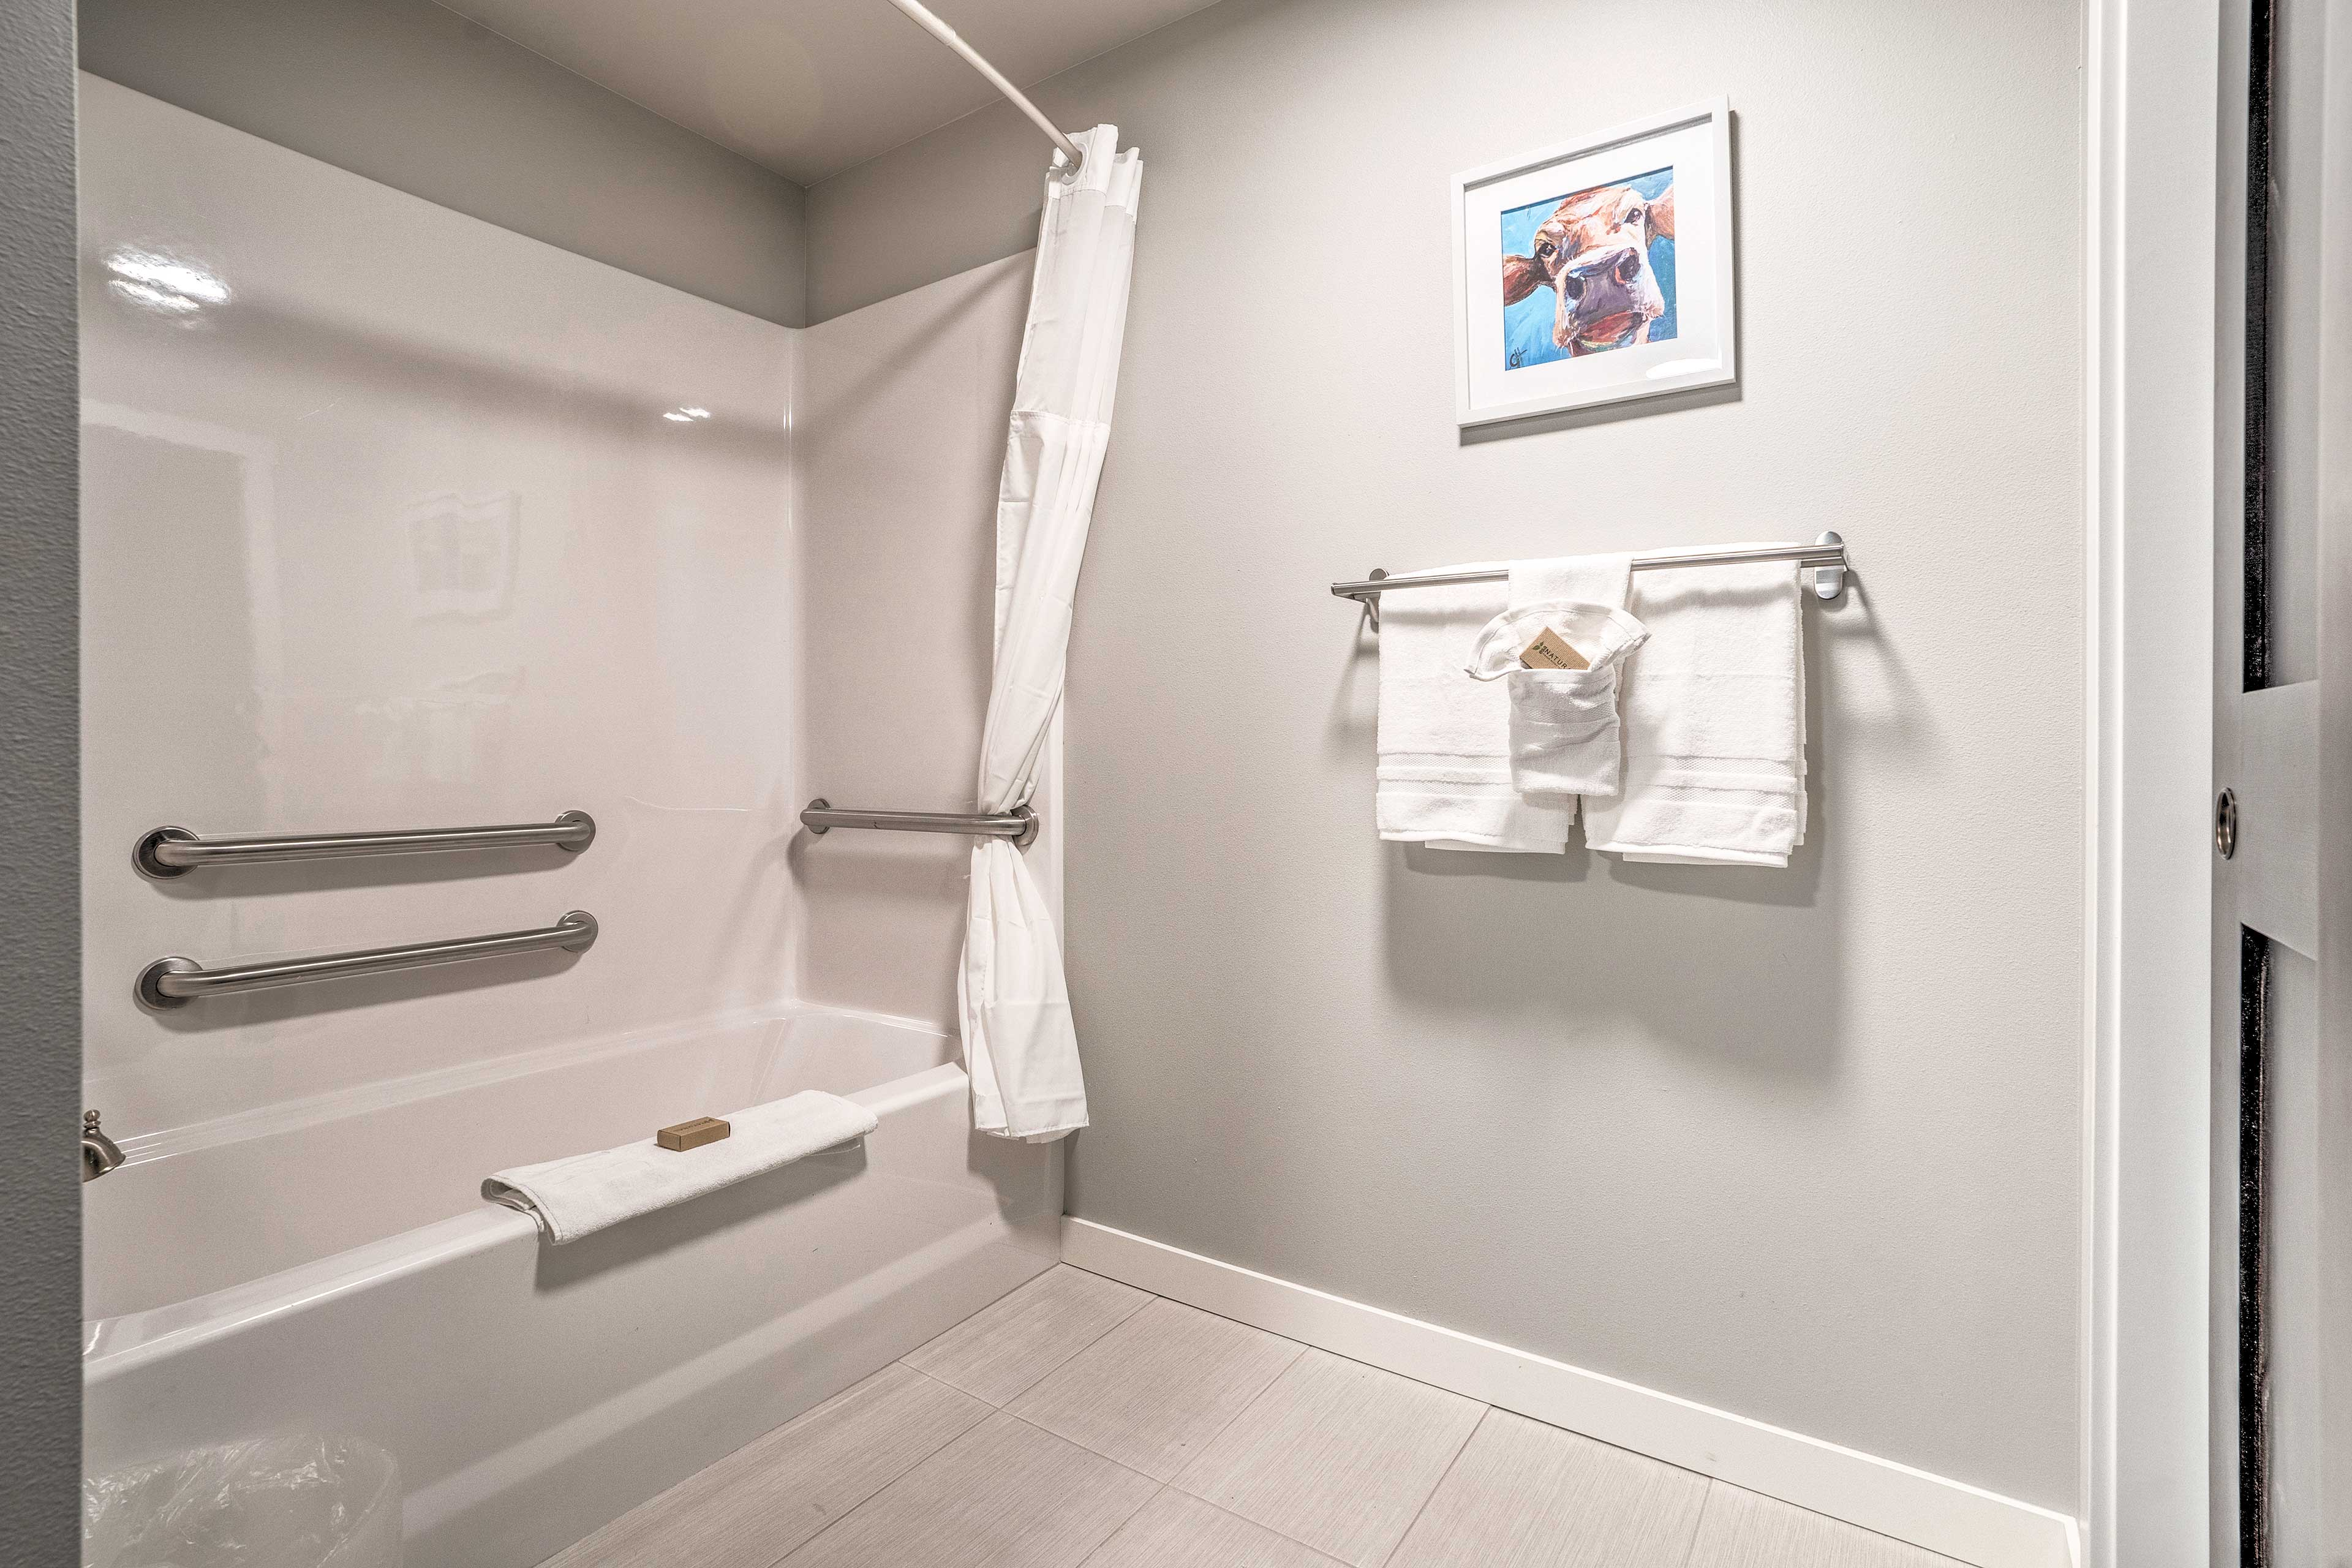 There are grab rails in the shower/tub combo for your convenience.